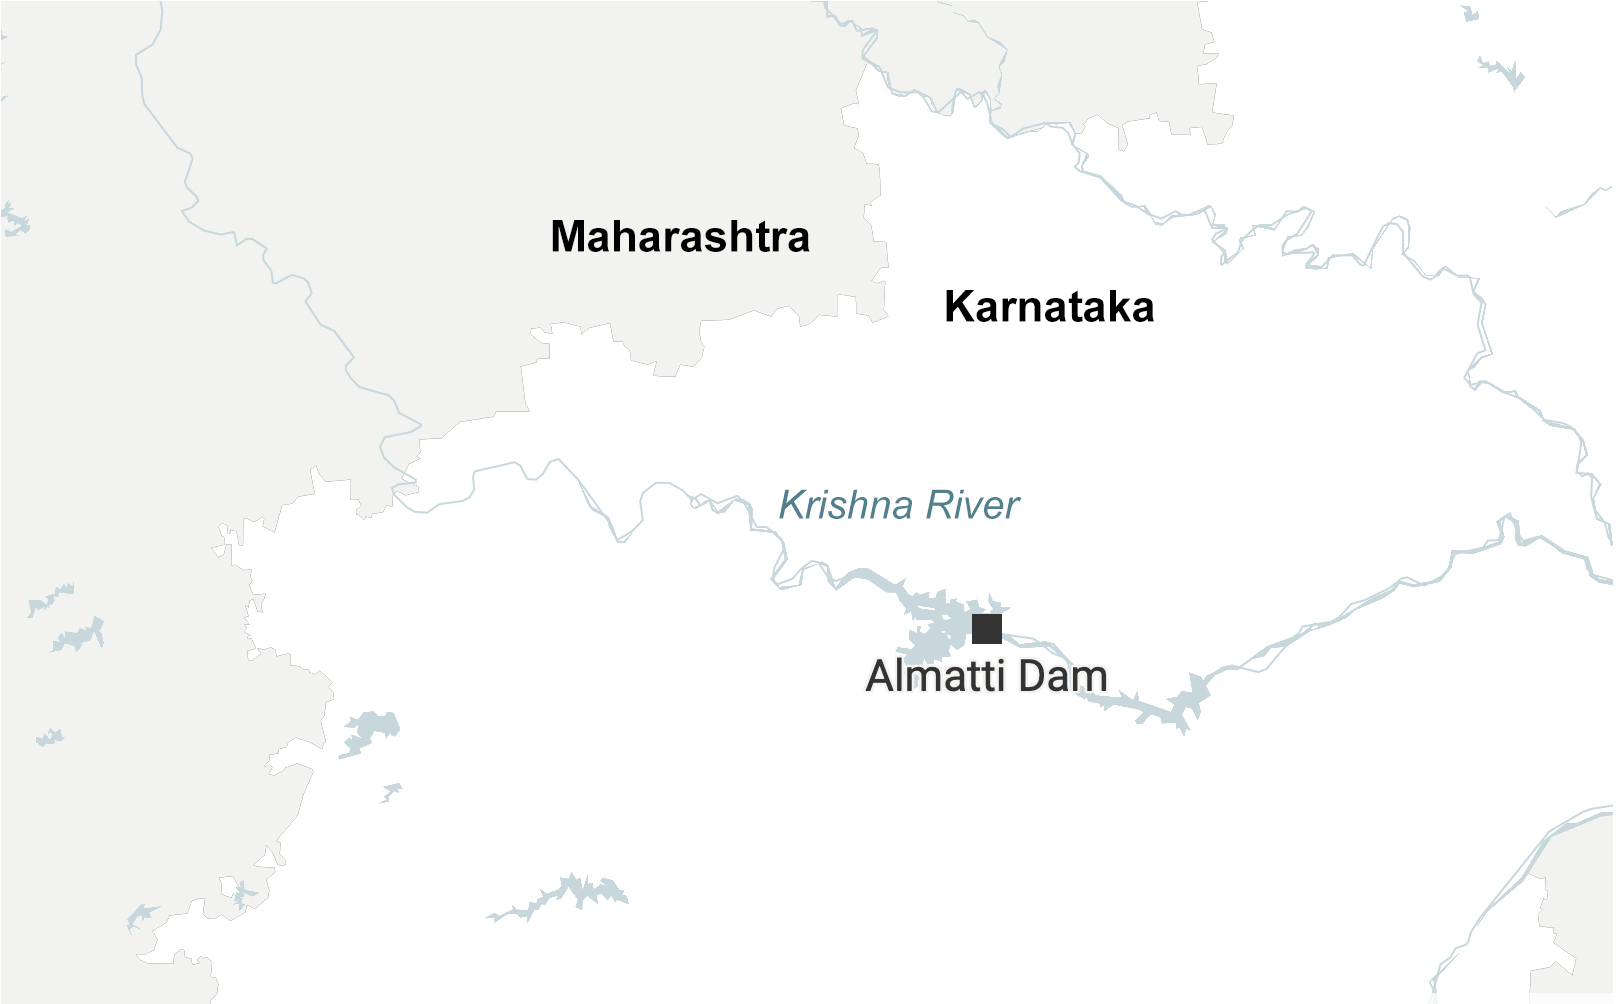 Almatti dam on Krishna River that flows through Maharashtra and Karnataka. Adding to the heavy rainfall, experts say the mismanagement of dam water increased the impact of flooding in both states. Map made with Datawrapper.